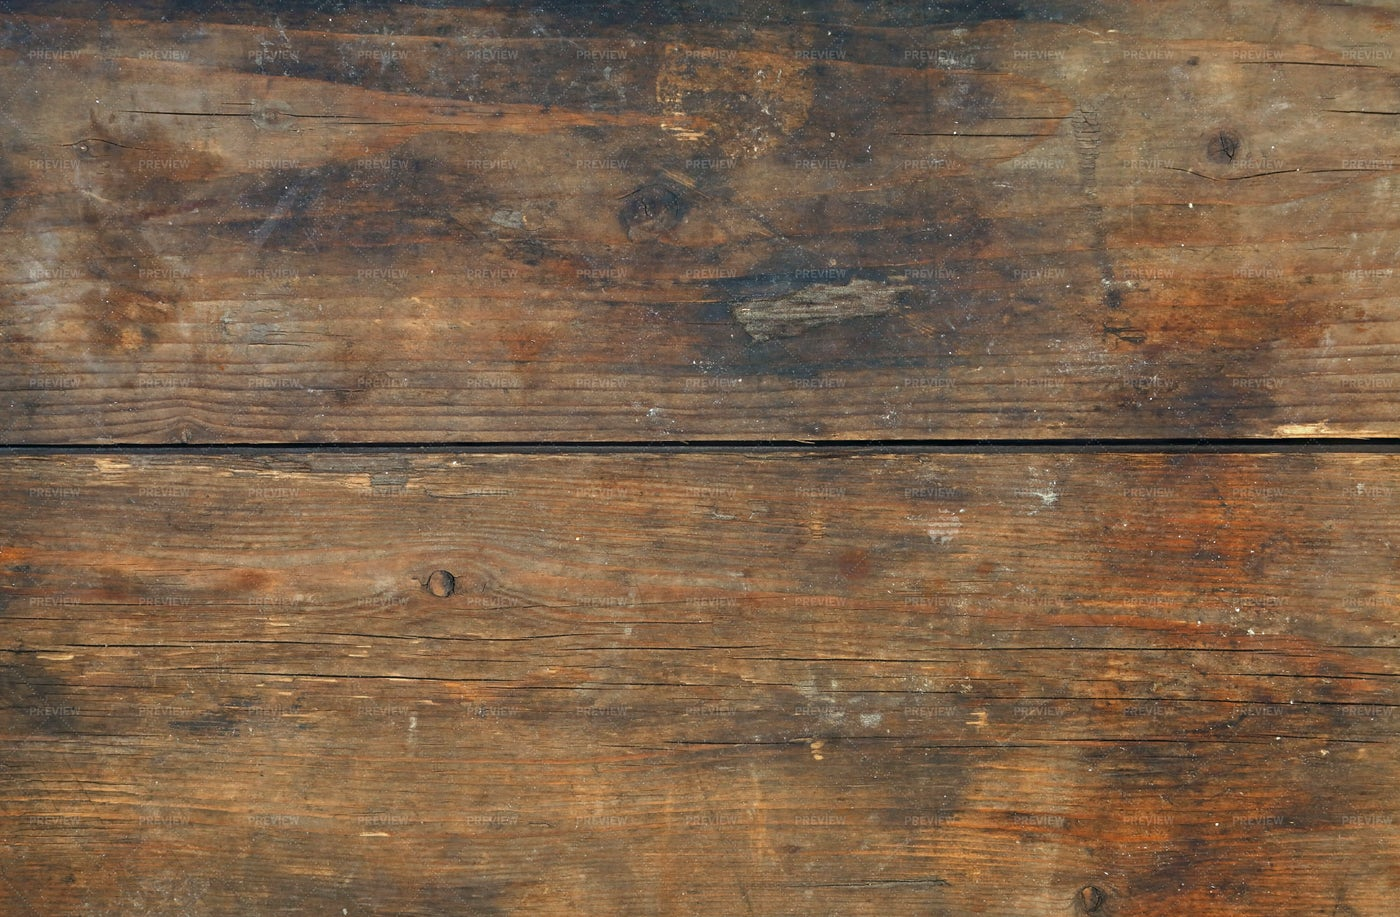 Old Vintage Wooden Planks: Stock Photos